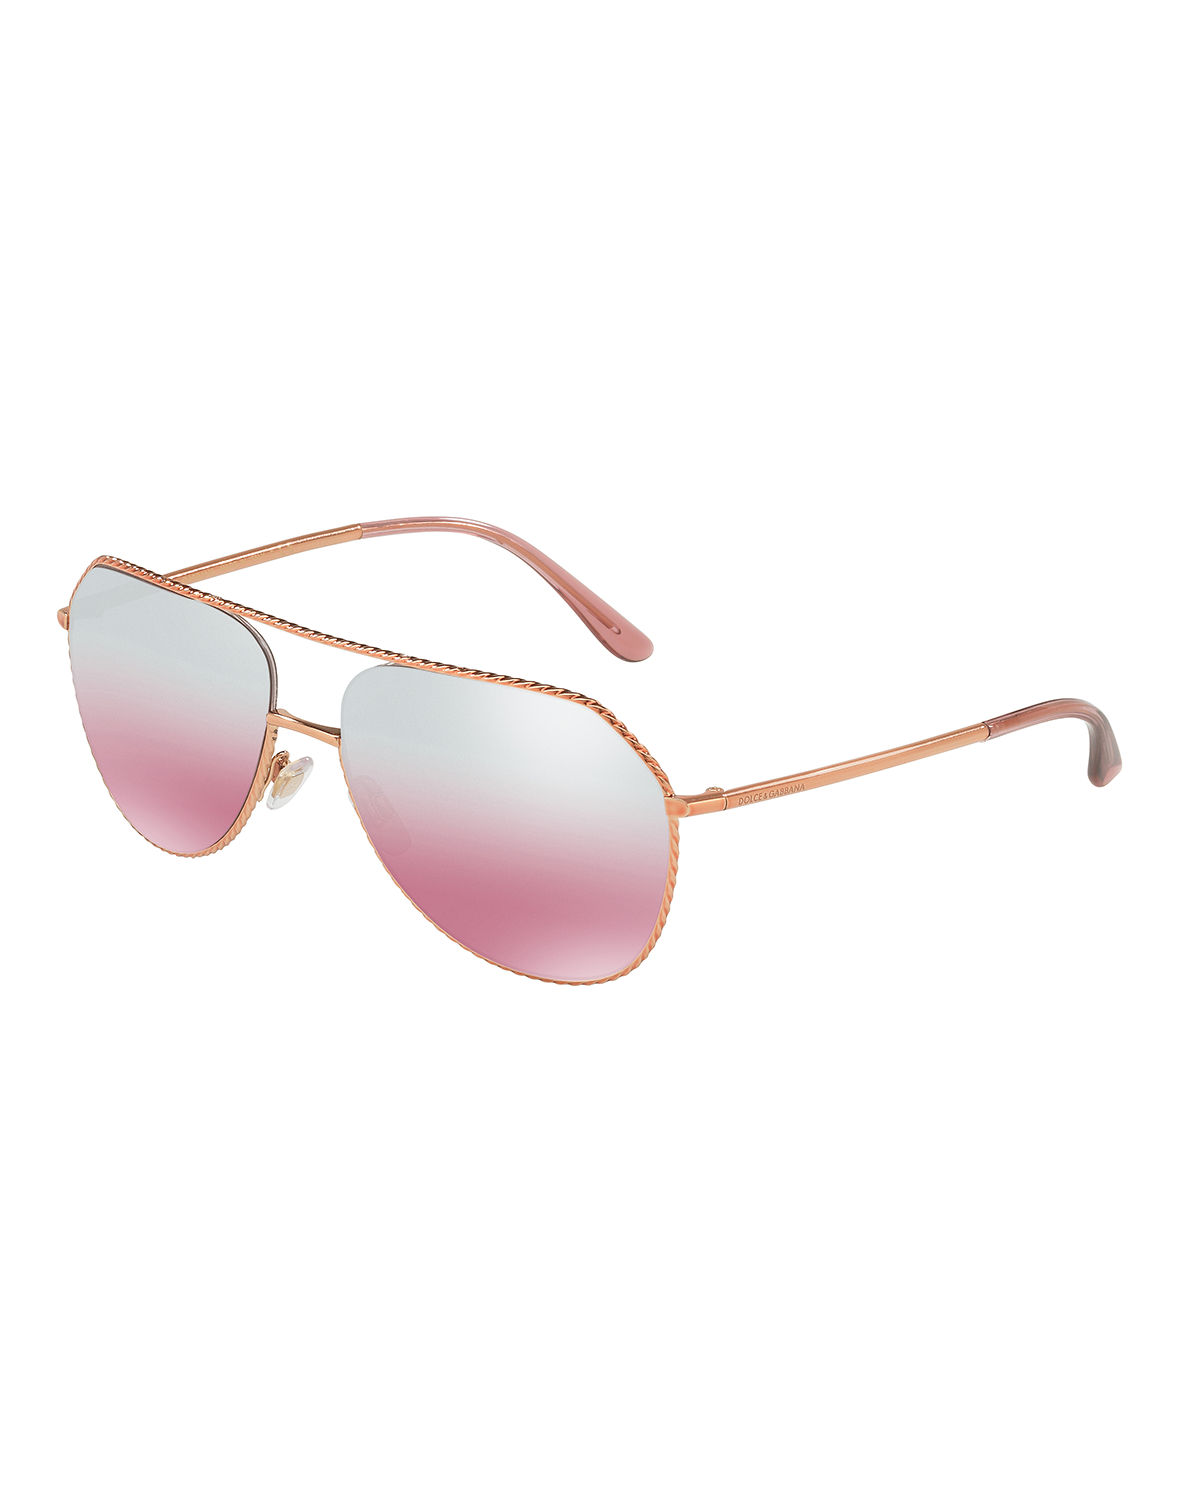 Braided Metal Aviator Sunglasses